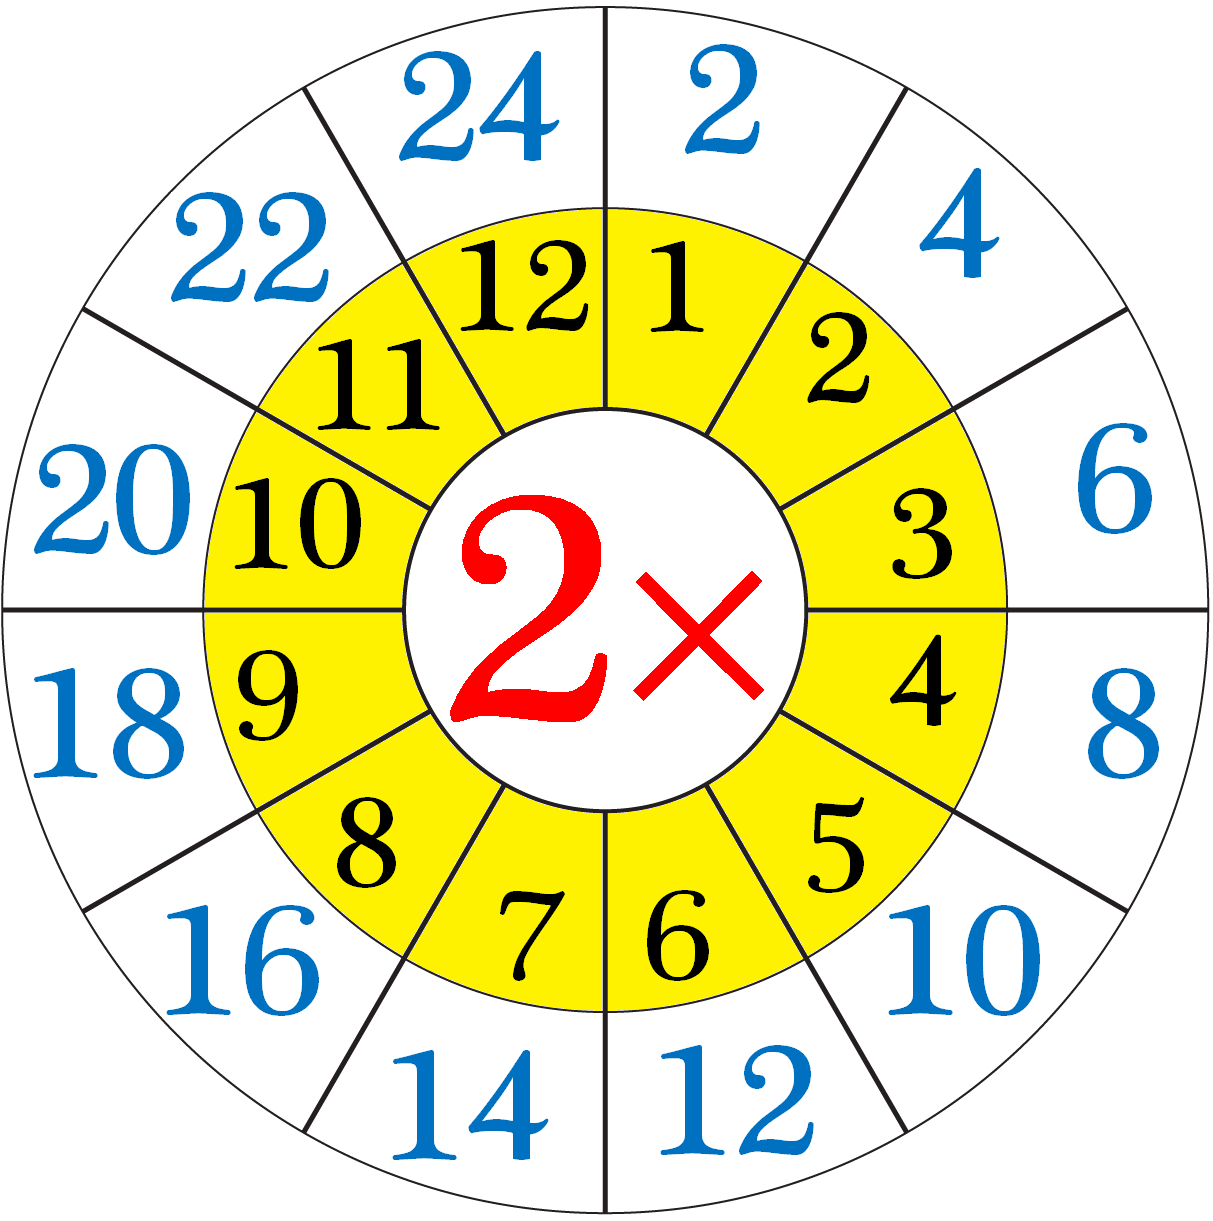 Multiplication Table Of Two